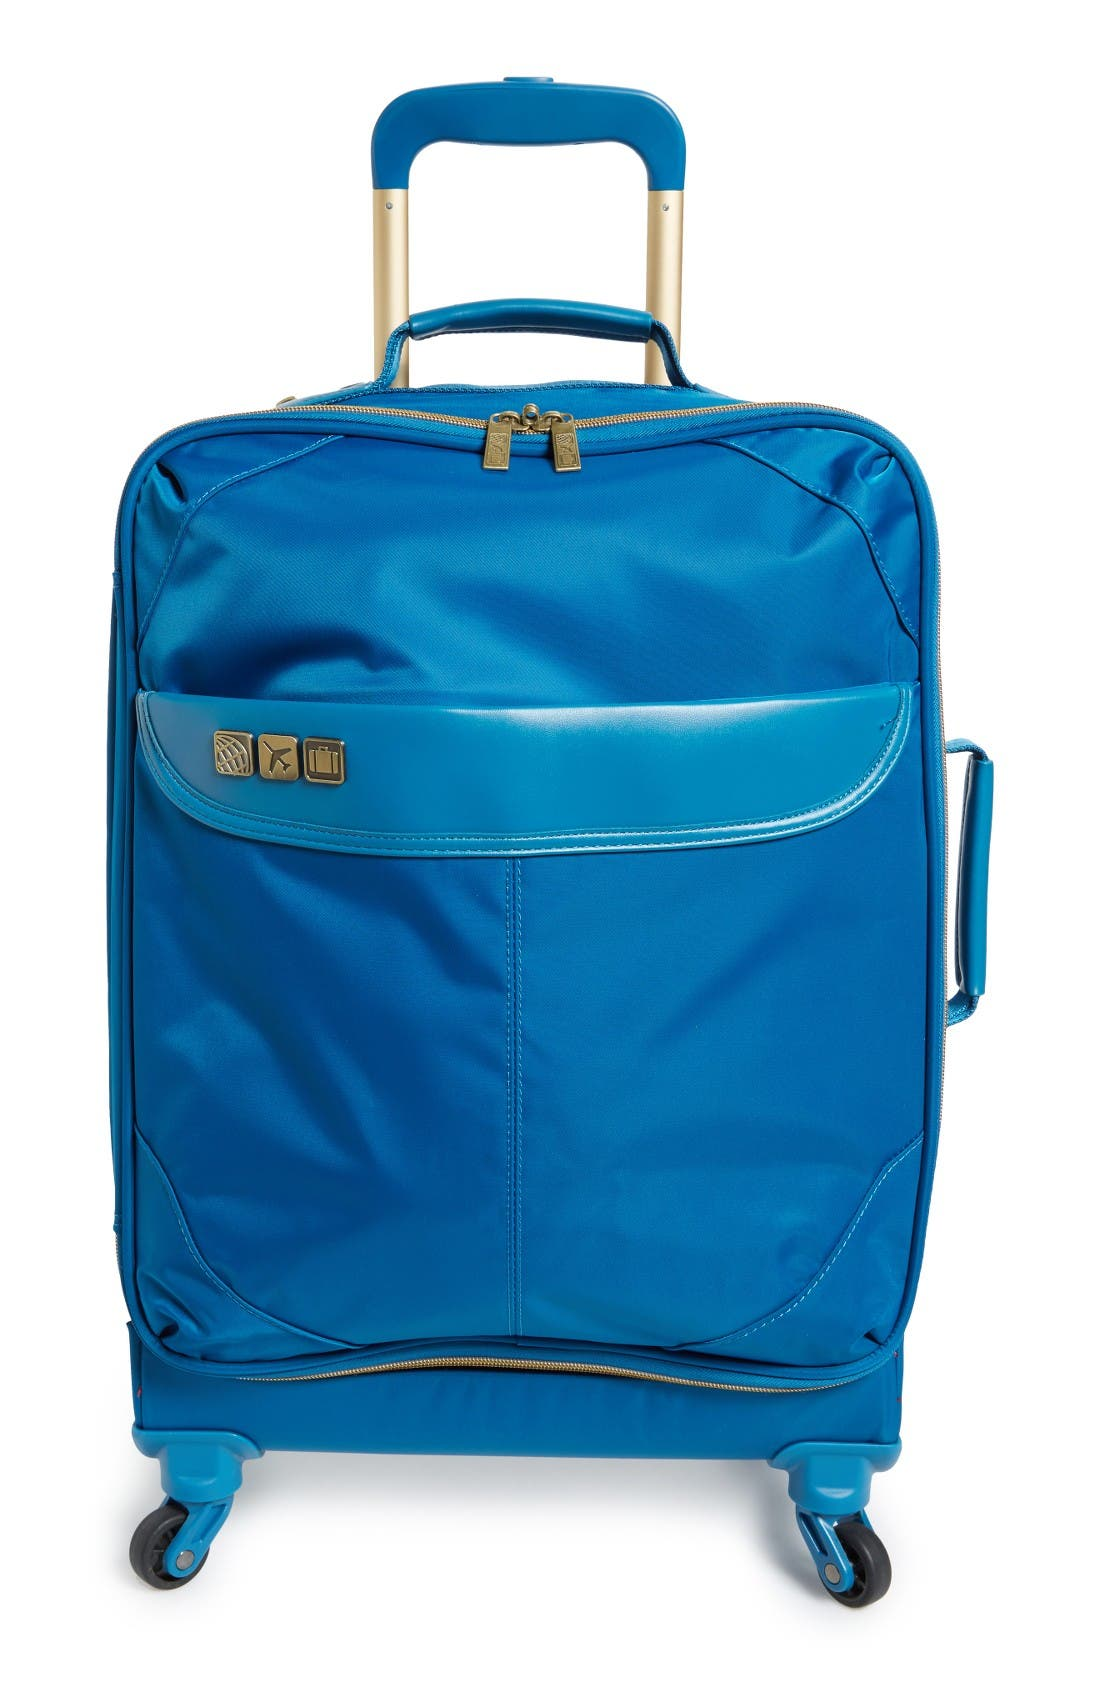 Flight 001 Avionette 19 Inch Rolling Carry-On Suitcase